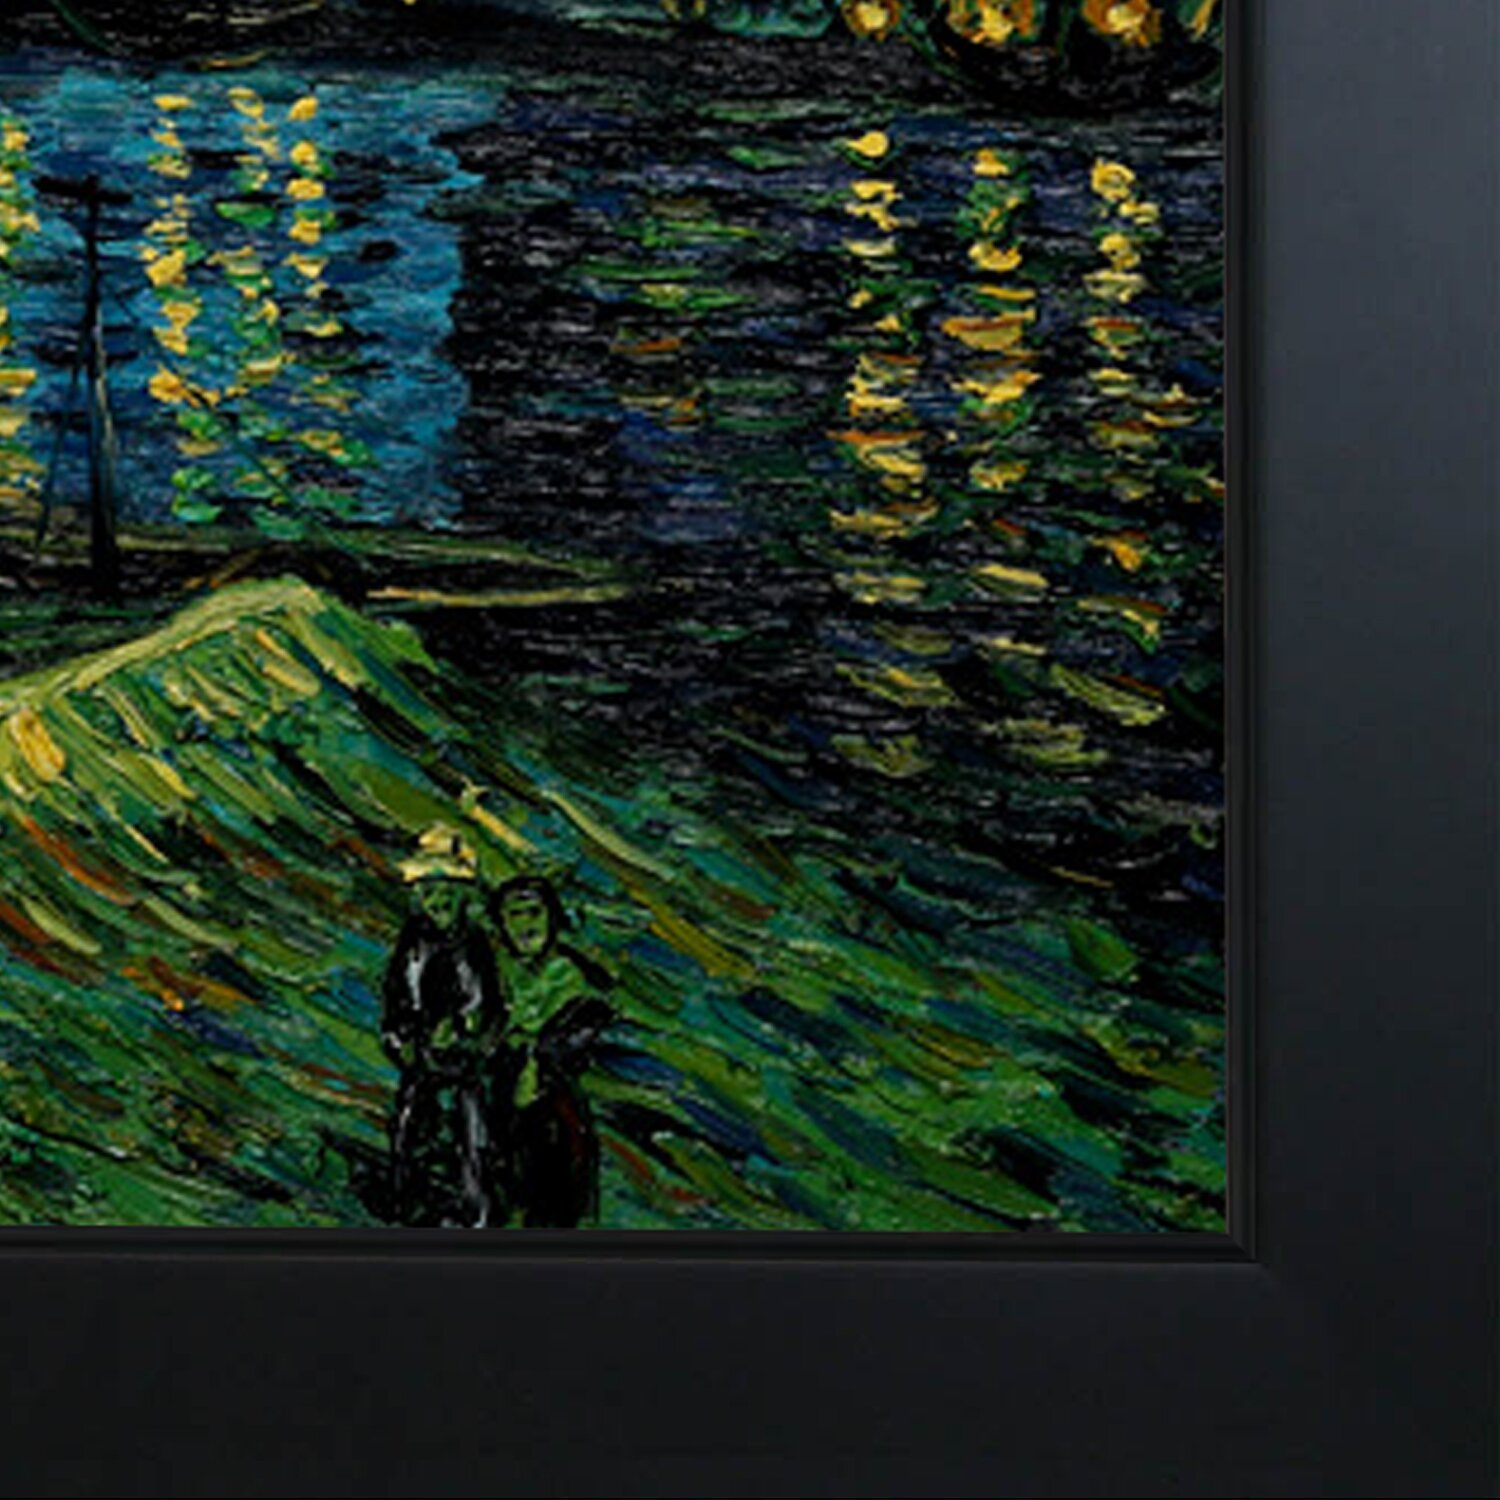 art criticism vincent van gogh s starry night Van gogh, the eldest of six children of a protestant pastor, was born and reared in a small village in the brabant region of the southern netherlands he was a quiet, self-contained youth, spending his free time wandering the countryside to observe nature at 16 he was apprenticed to the hague.